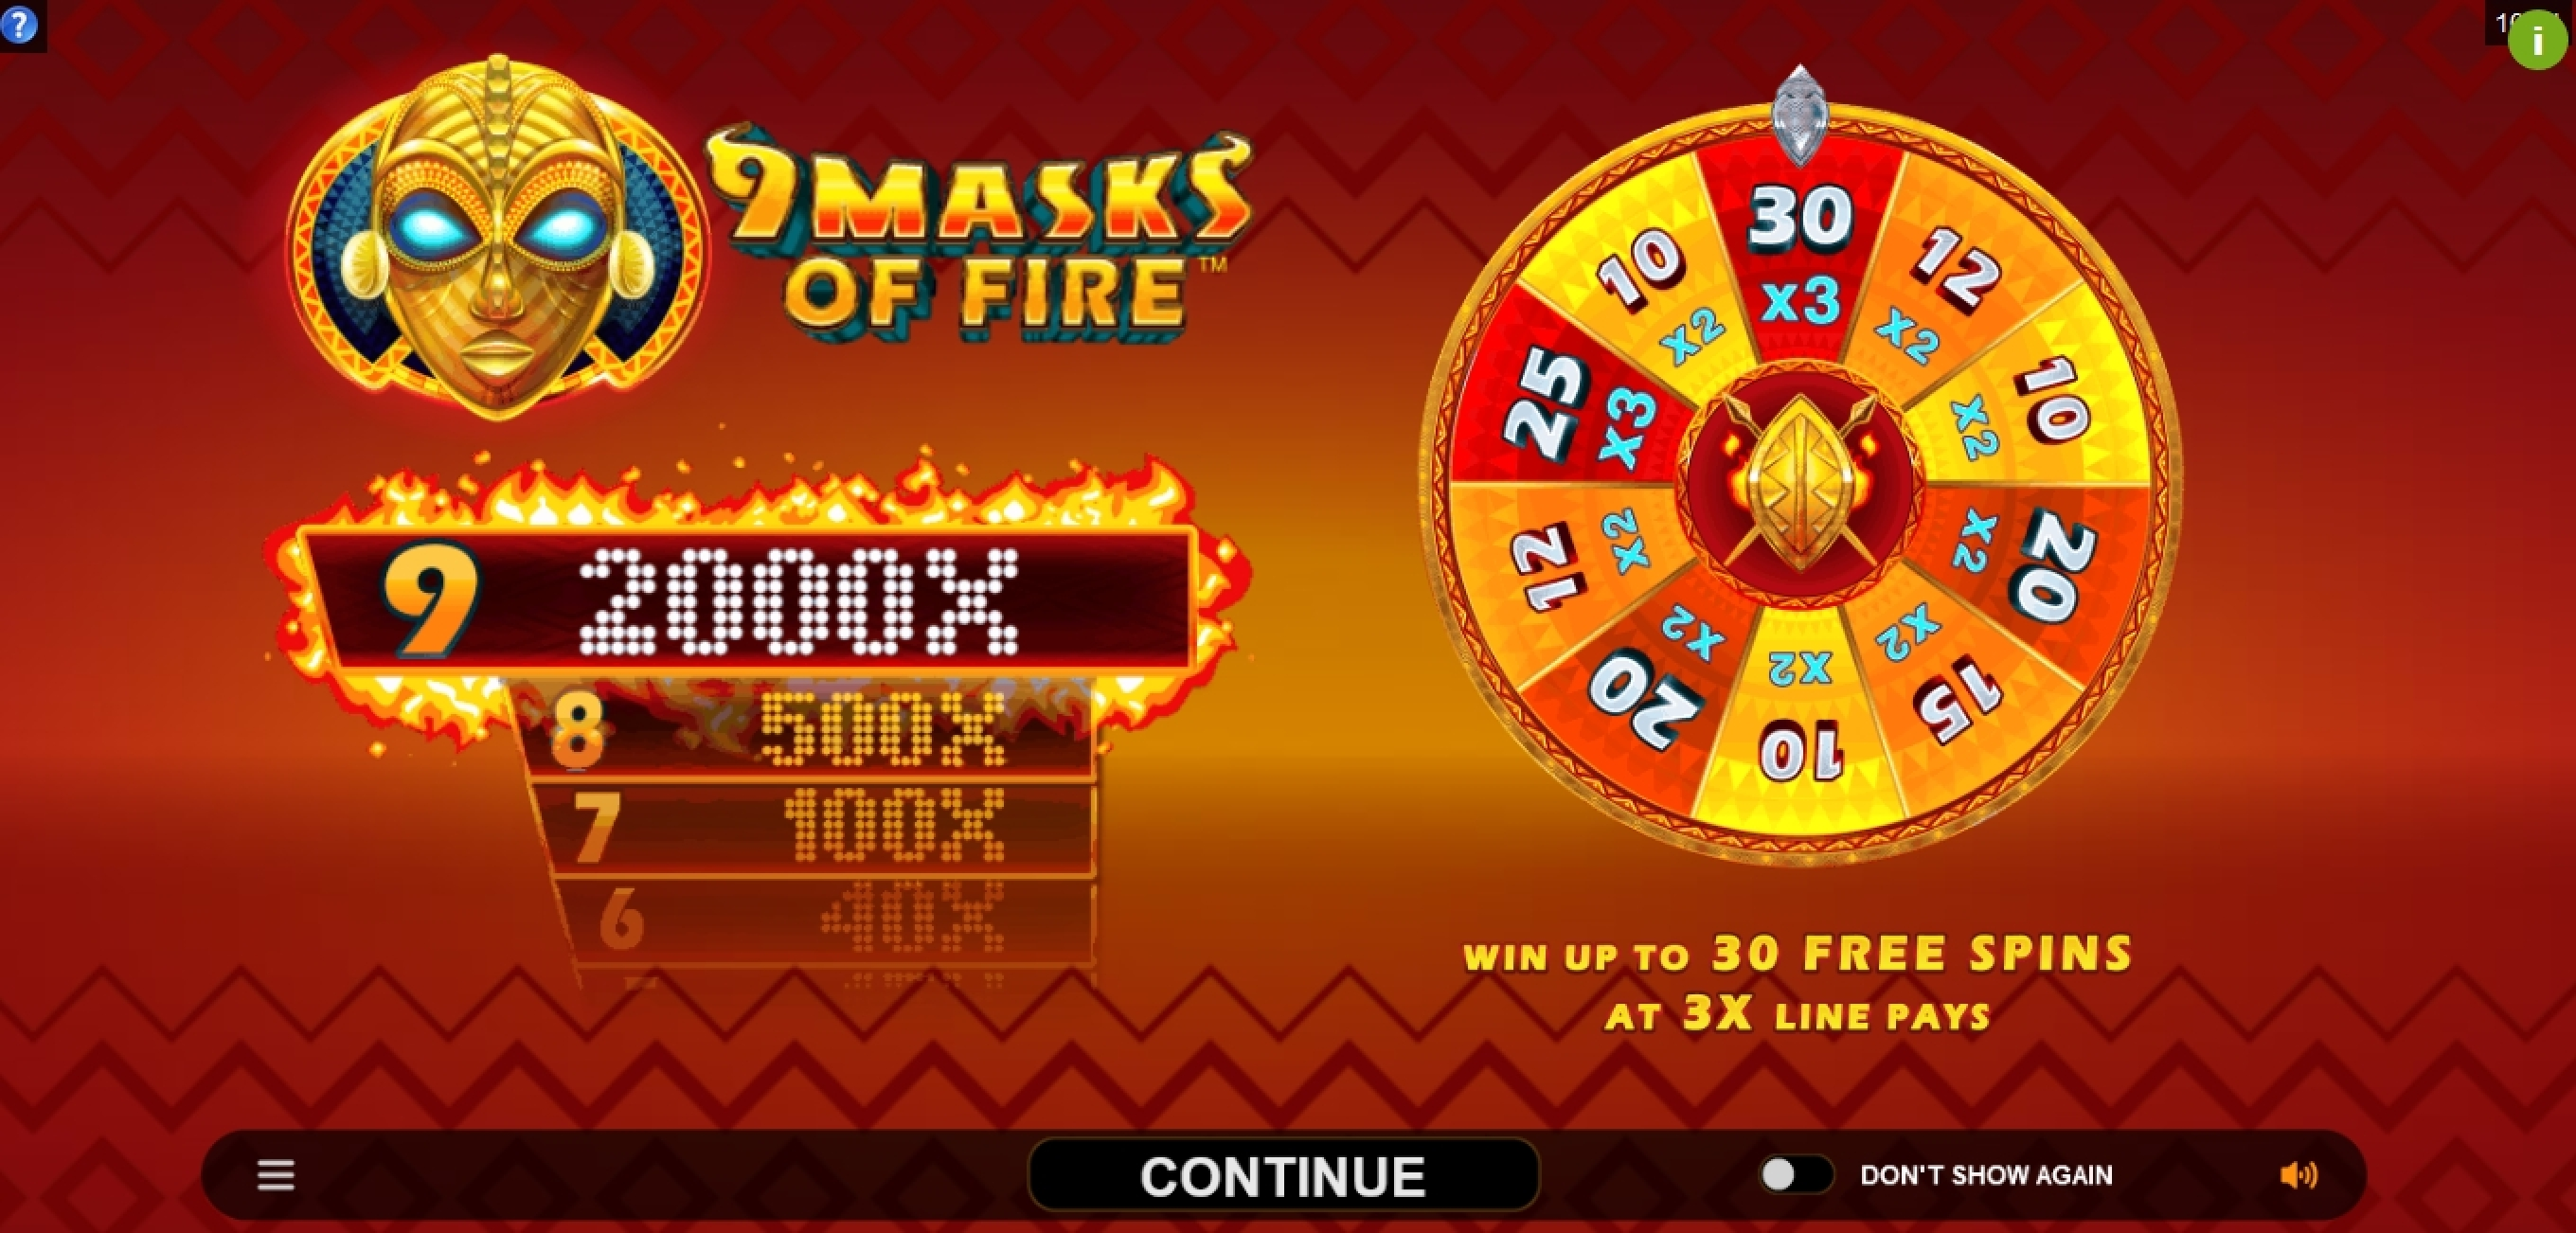 Play 9 Masks Of Fire Free Casino Slot Game by Gameburger Studios